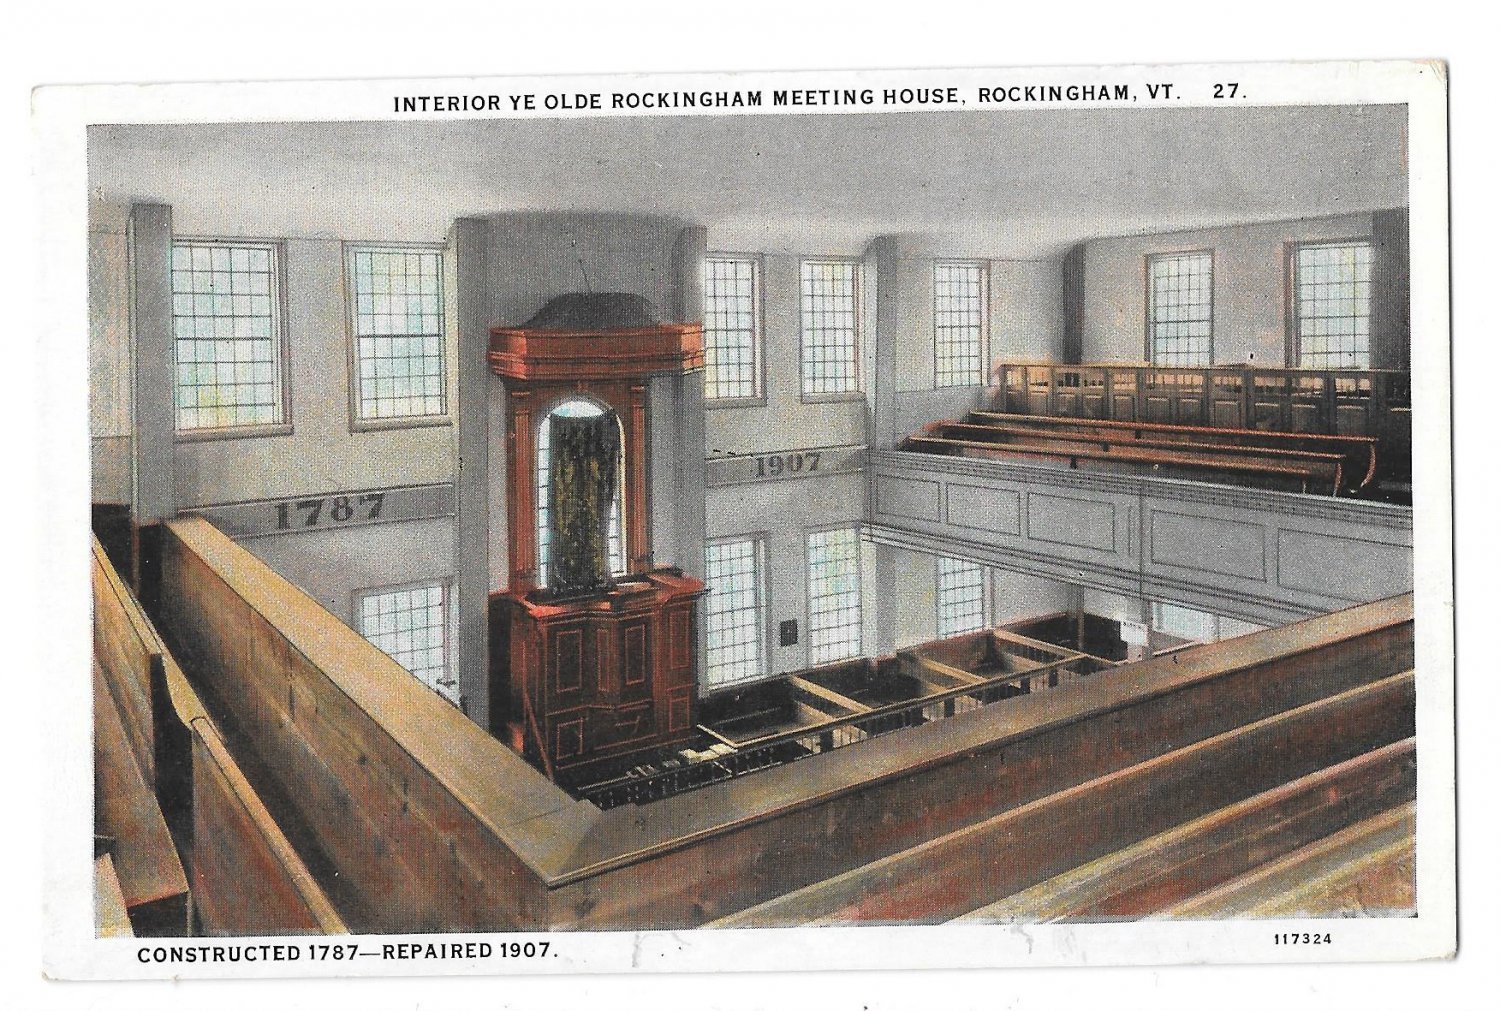 A post card the features the interior of the meeting house shortly after it was renovated.